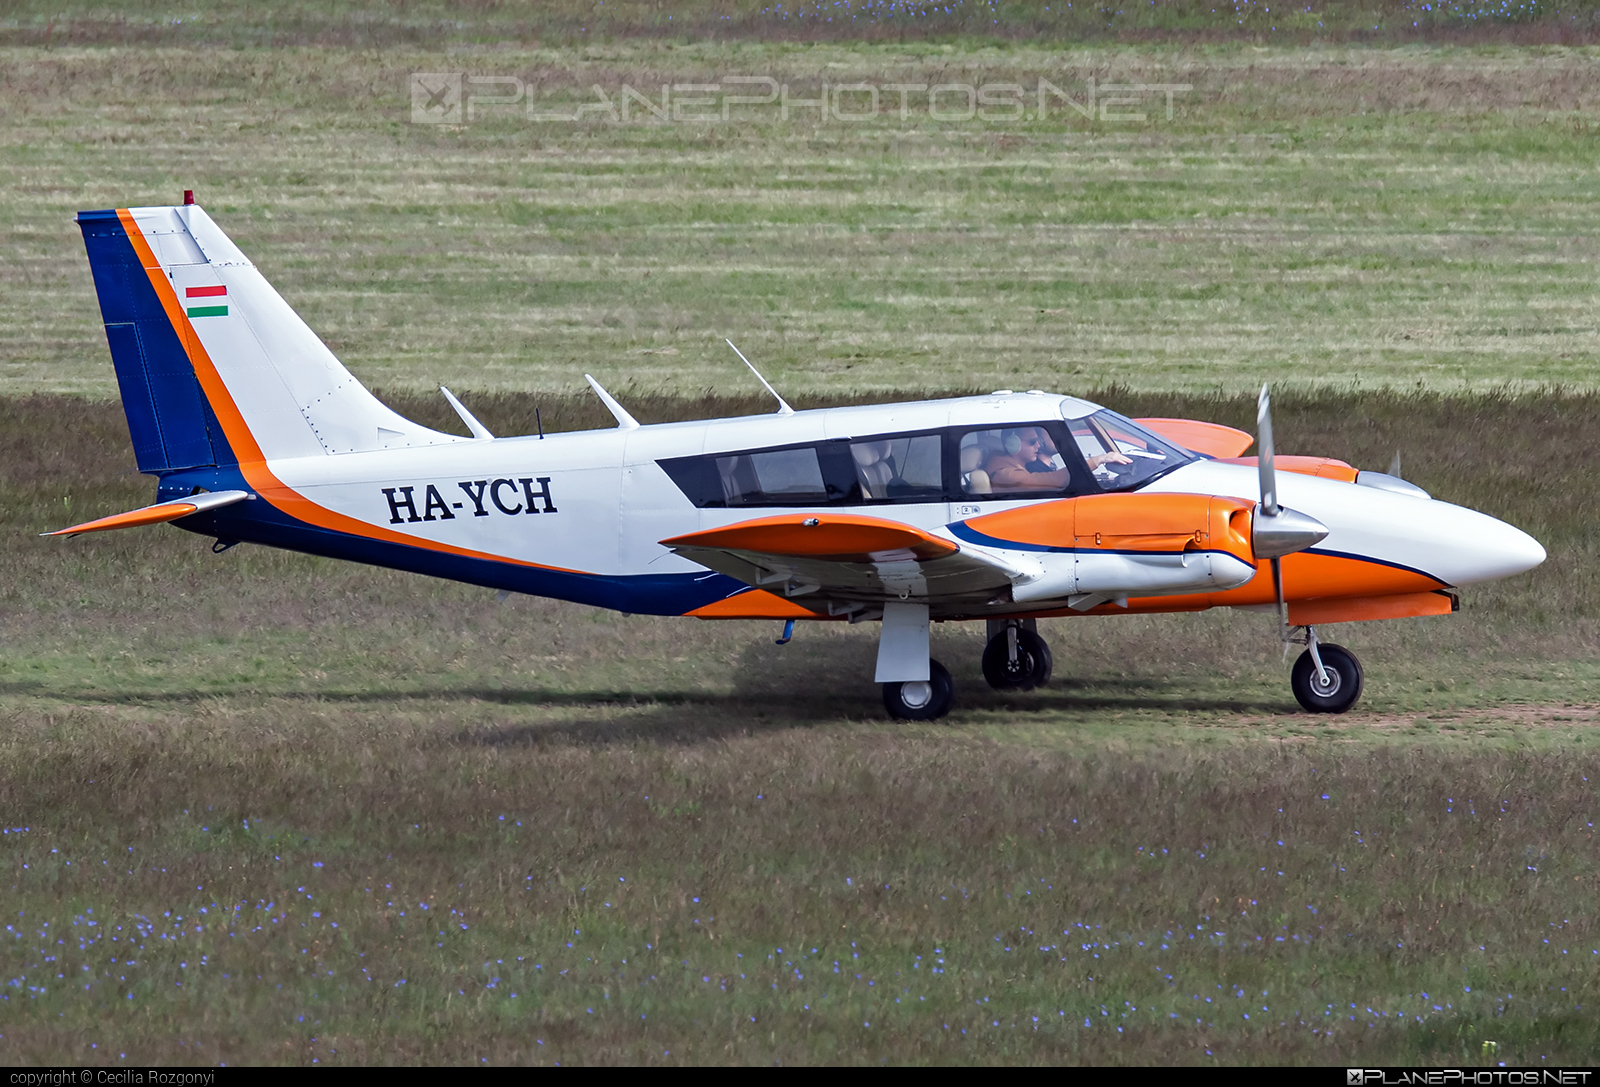 Piper PA-34-200 Seneca - HA-YCH operated by Fly-Coop #flycoop #pa34 #pa34200 #pa34200seneca #pa34seneca #piper #piperpa34 #piperpa34seneca #piperseneca